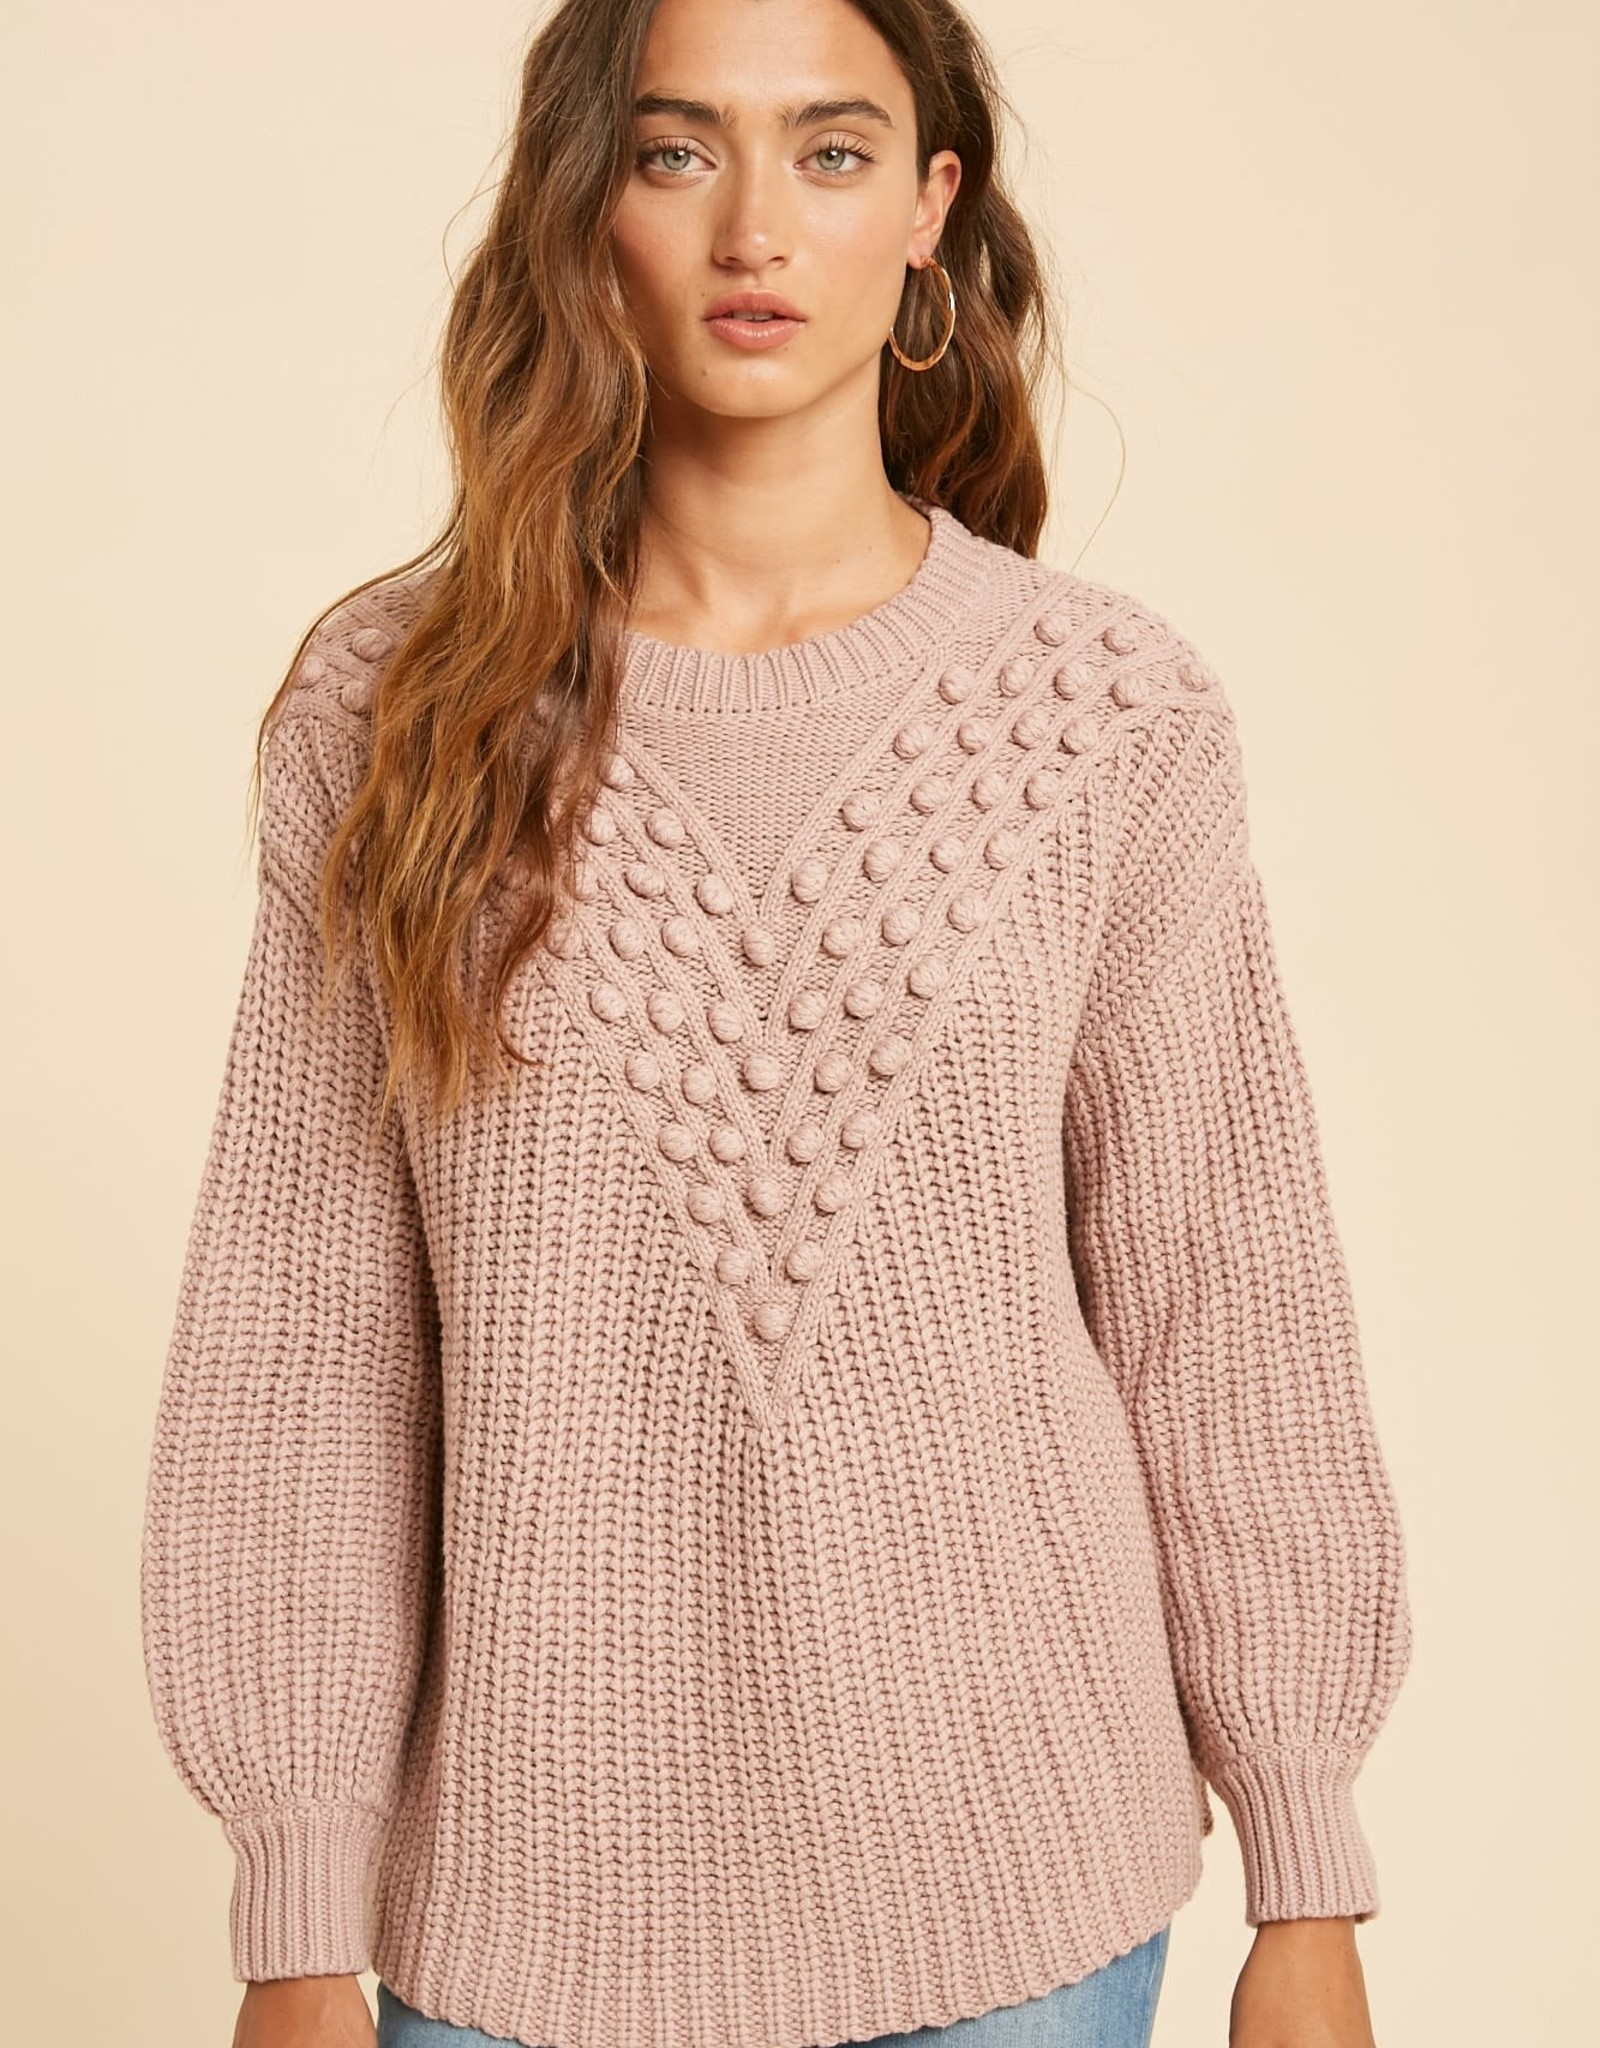 Miss Bliss Cotton Blend Pom Knitted Sweater- Mauve